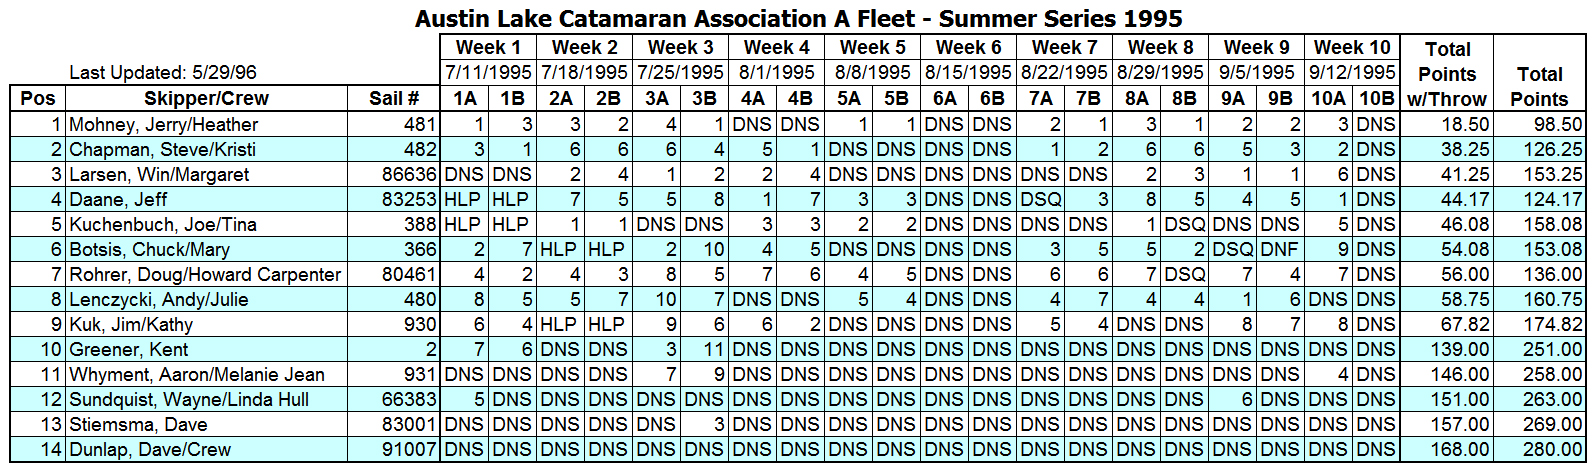 1995 Summer A Fleet Results